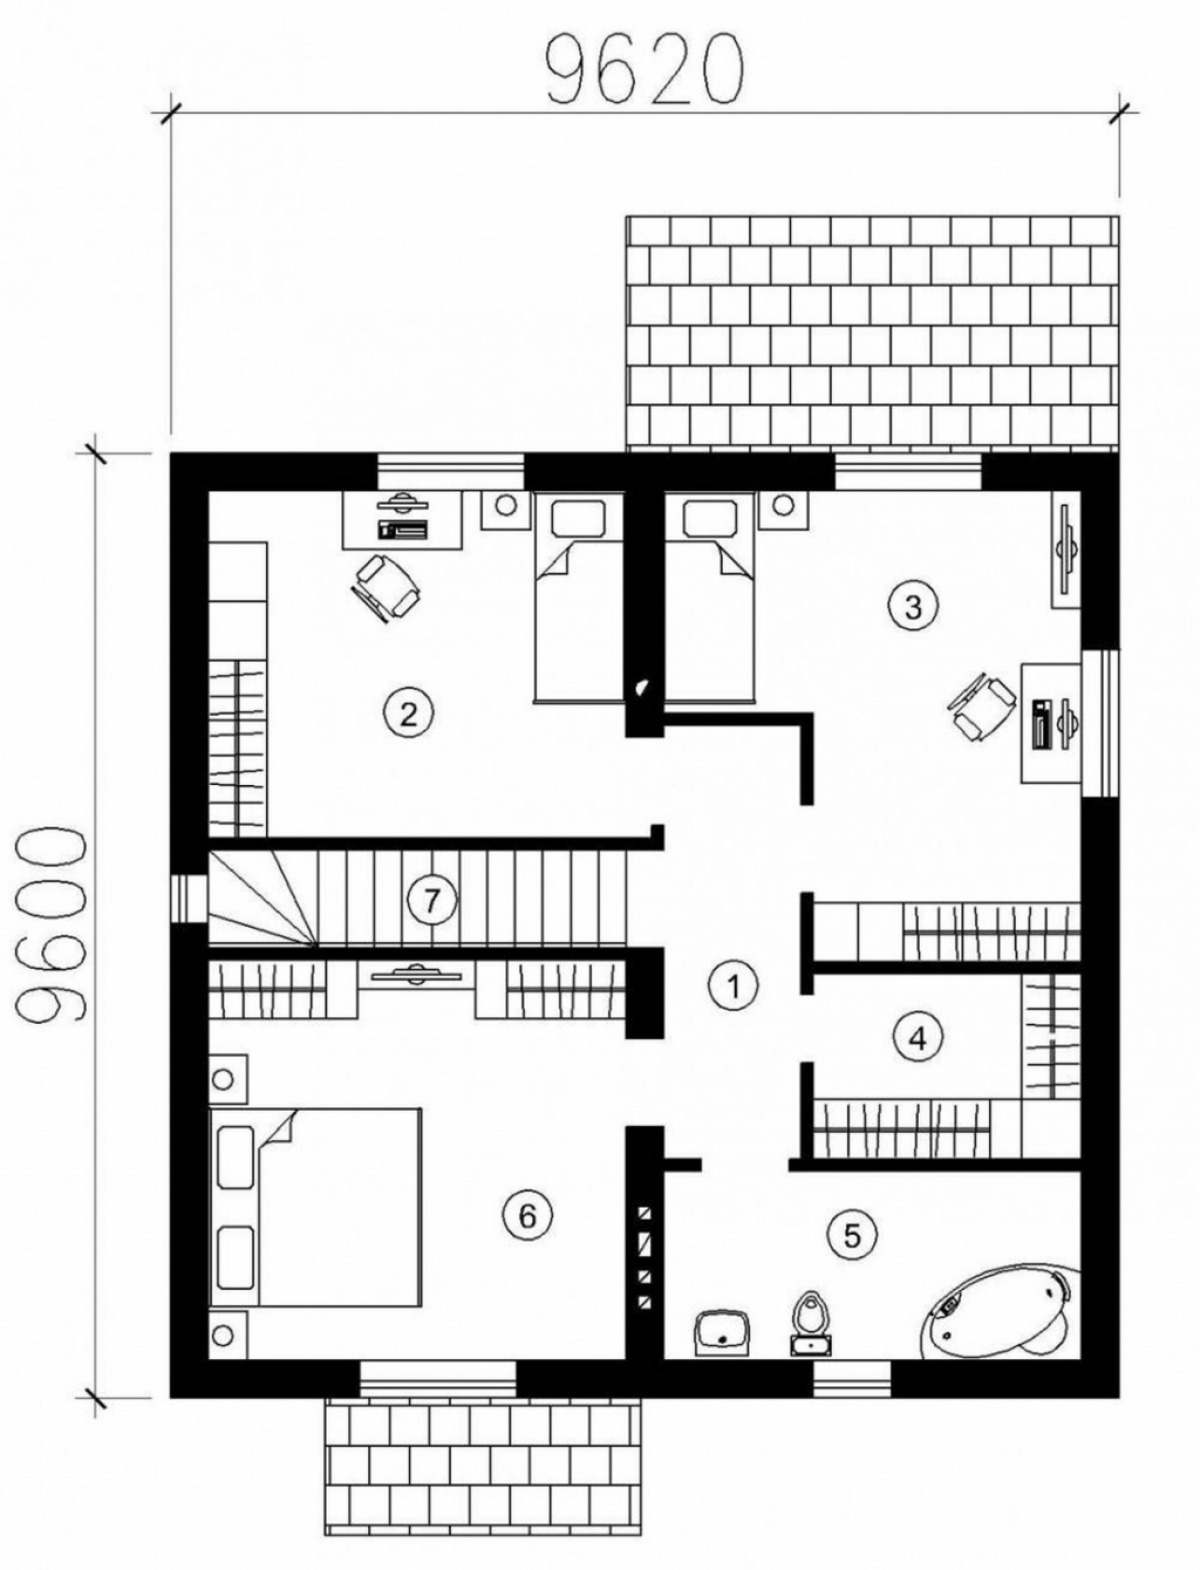 Sample Of Simple House Design Elegant Plans for Sale In H Beautiful Small Modern House Designs